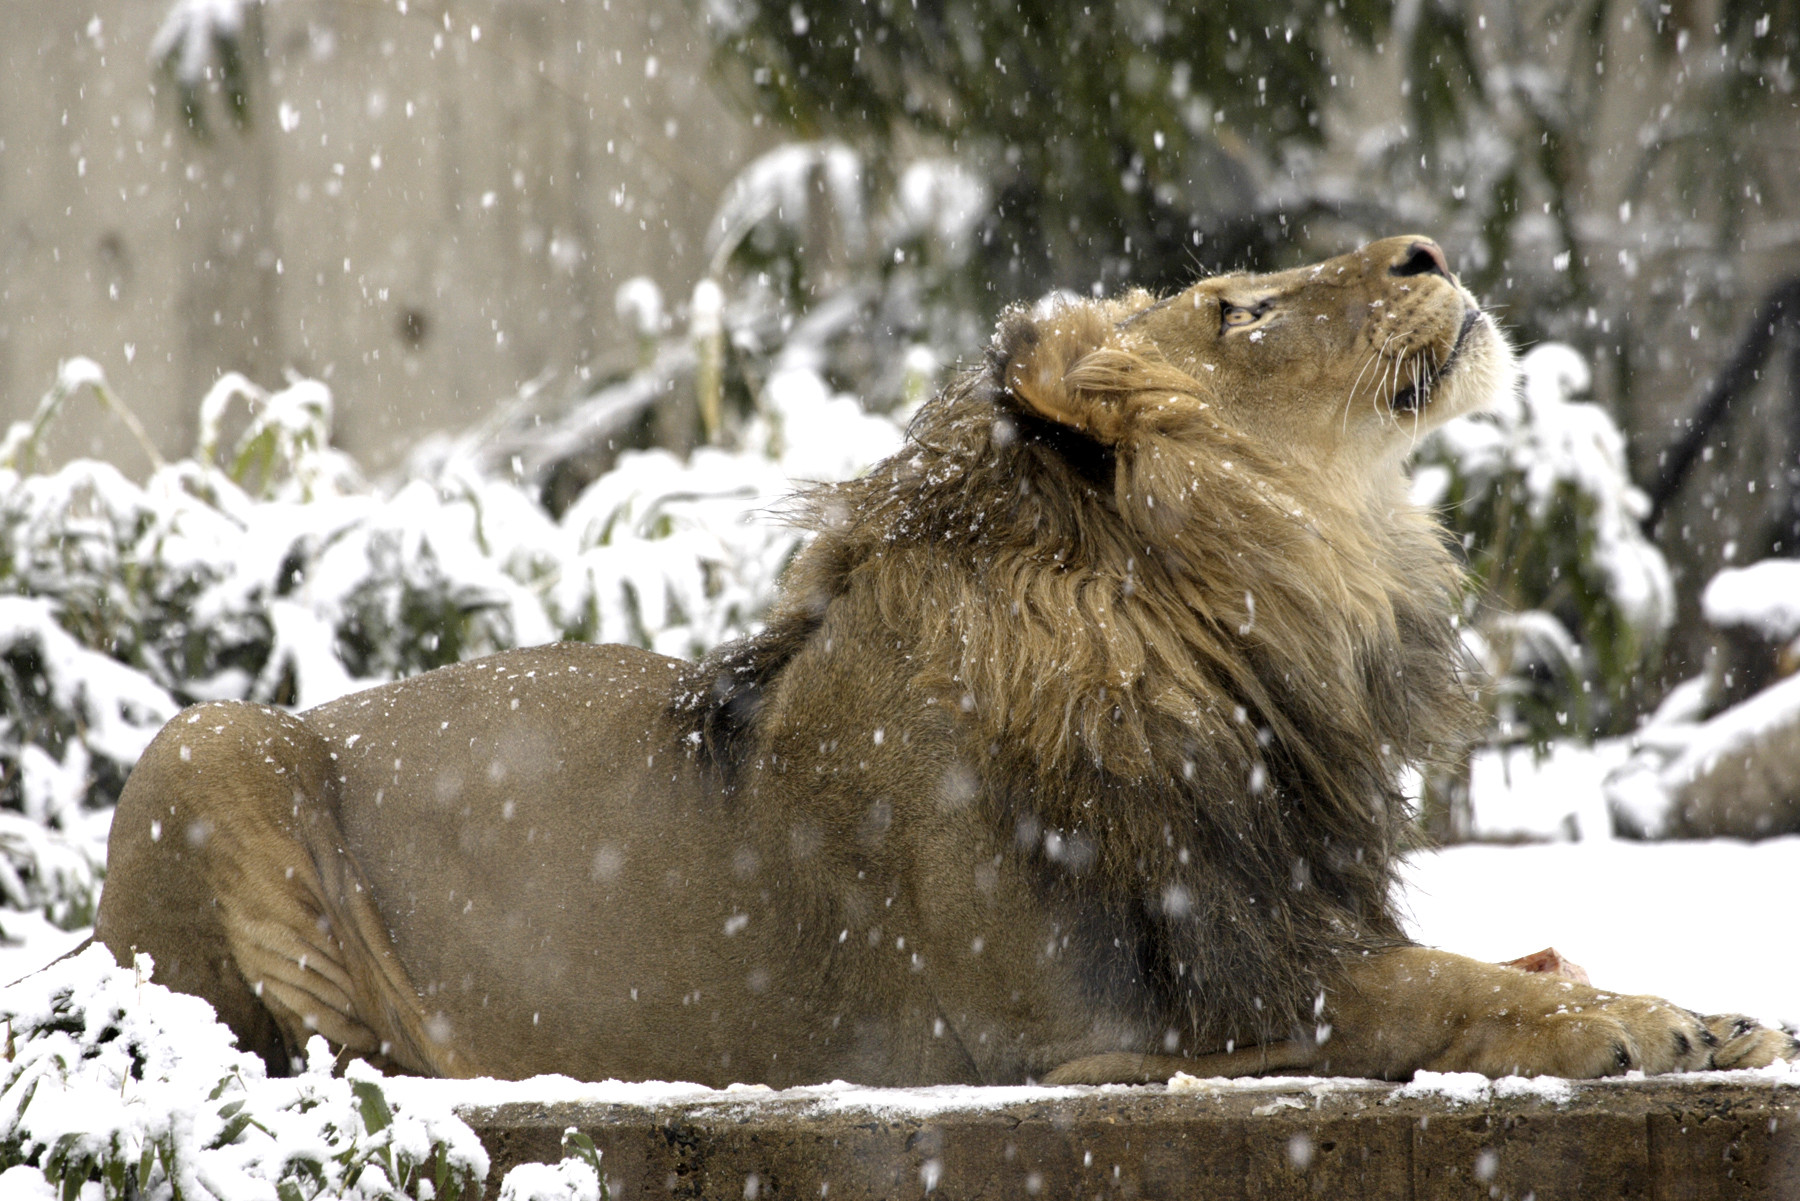 lion watching falling snowflakes at Smithsonian Zoo.